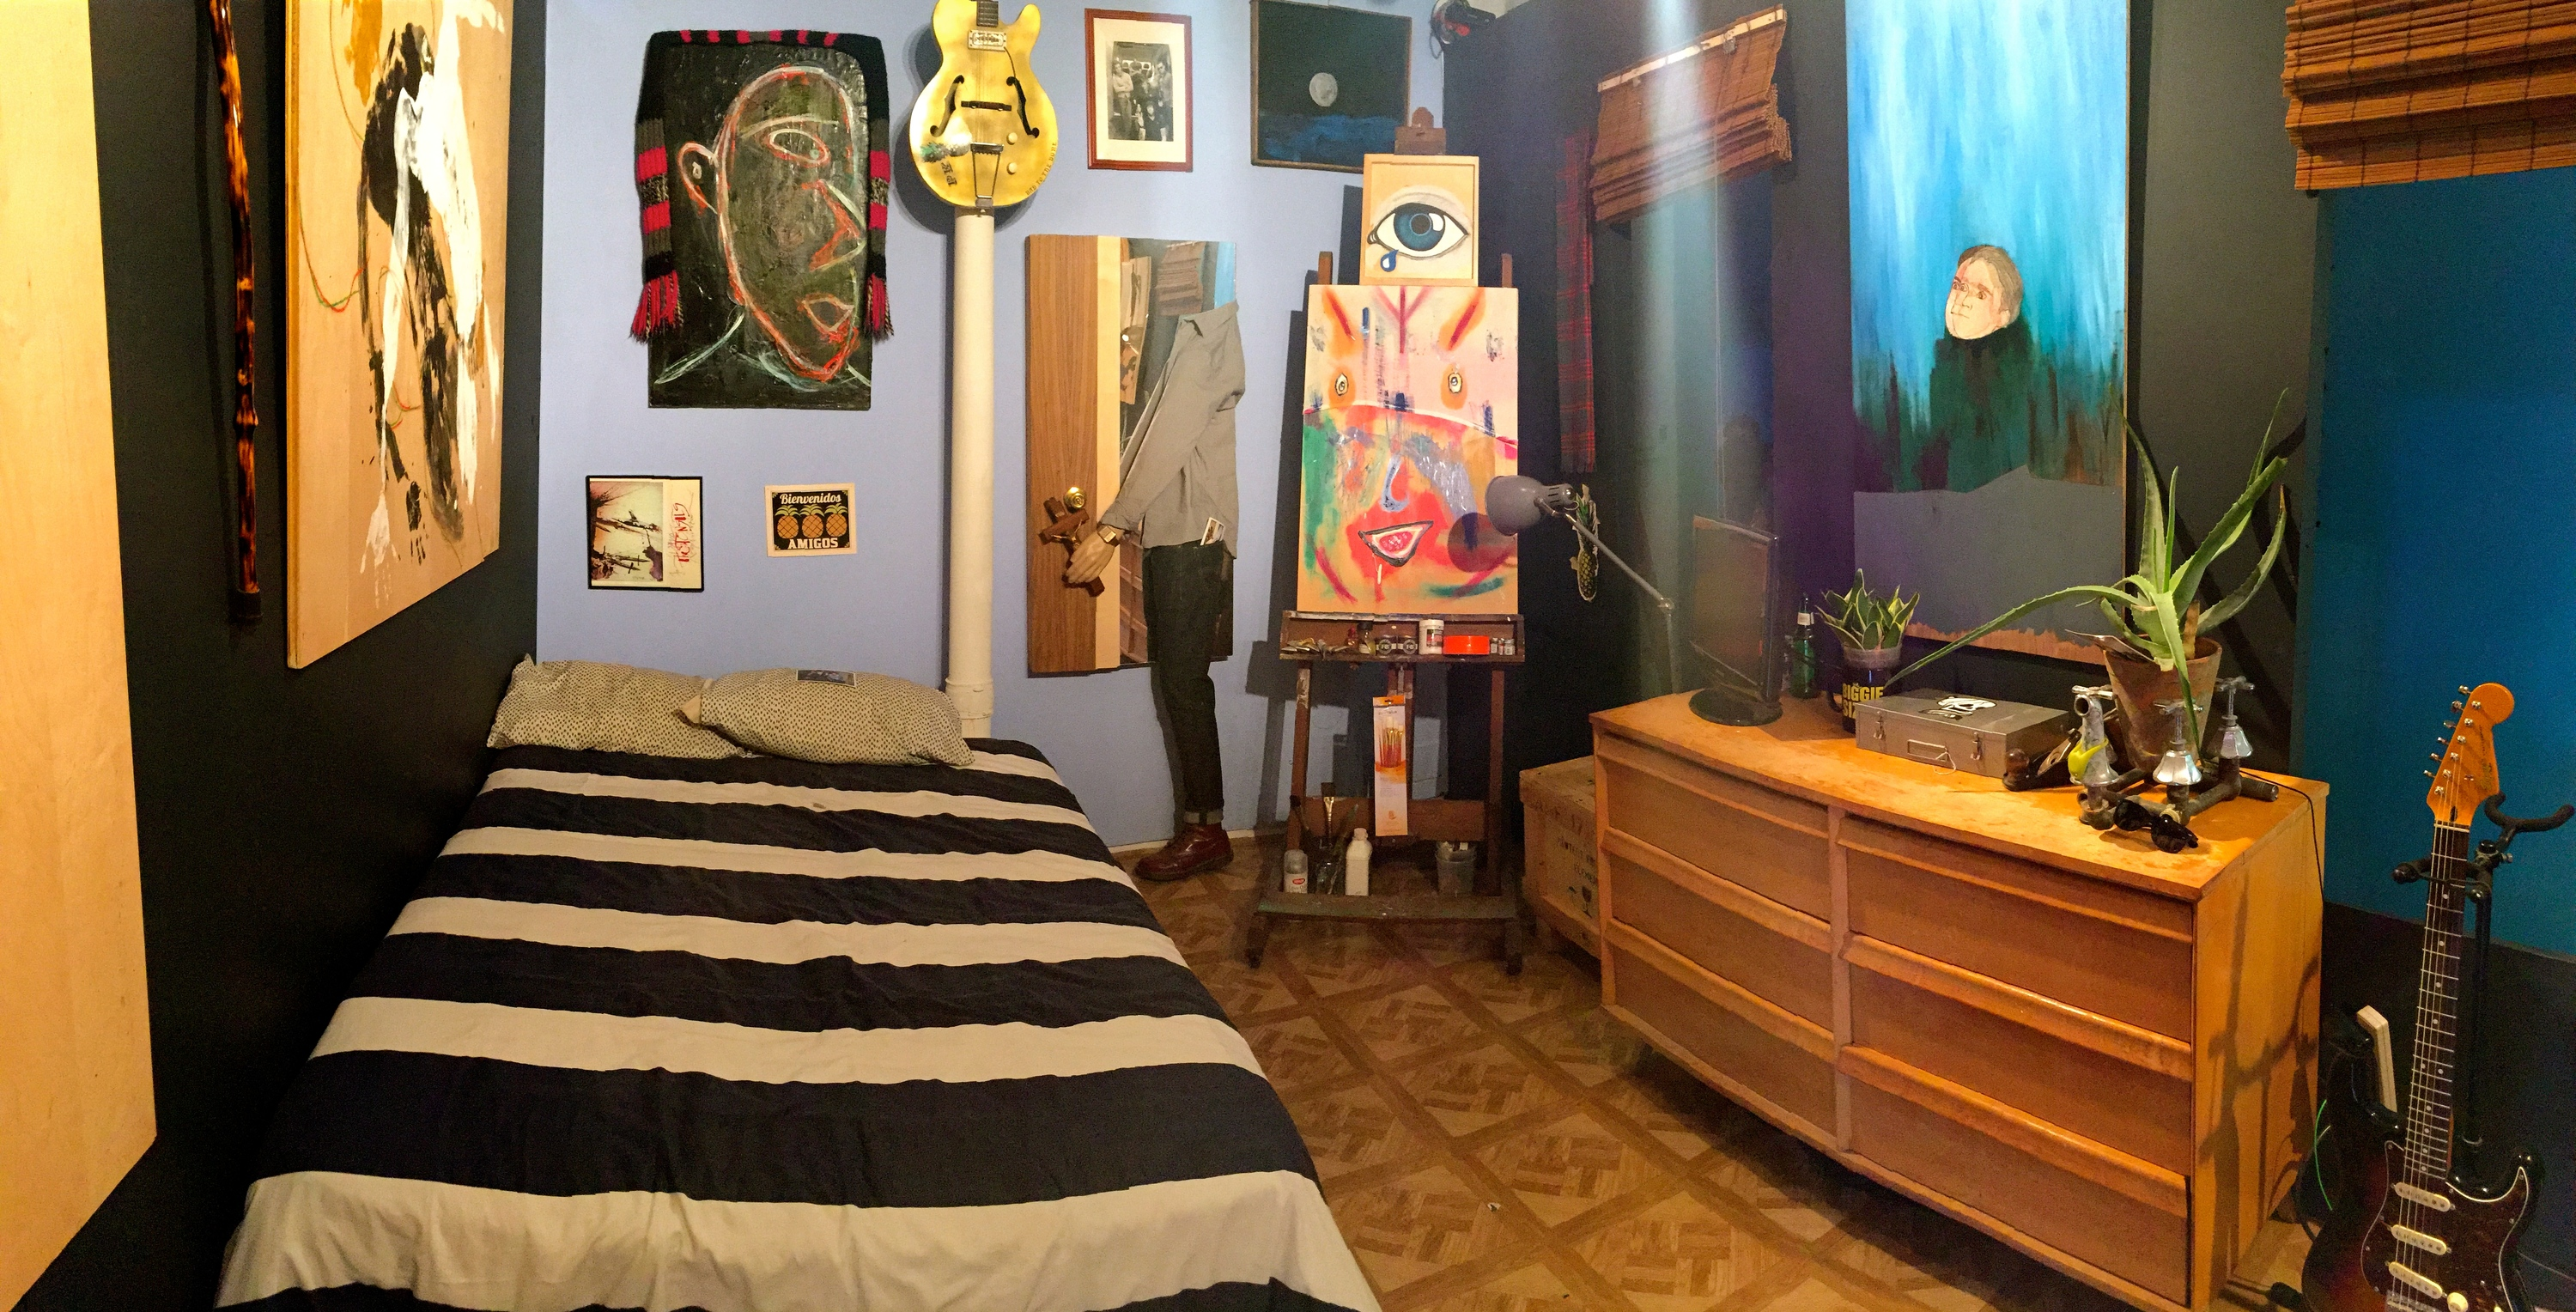 Artist doesn't have go far to get to his show; his bedroom is in the gallery